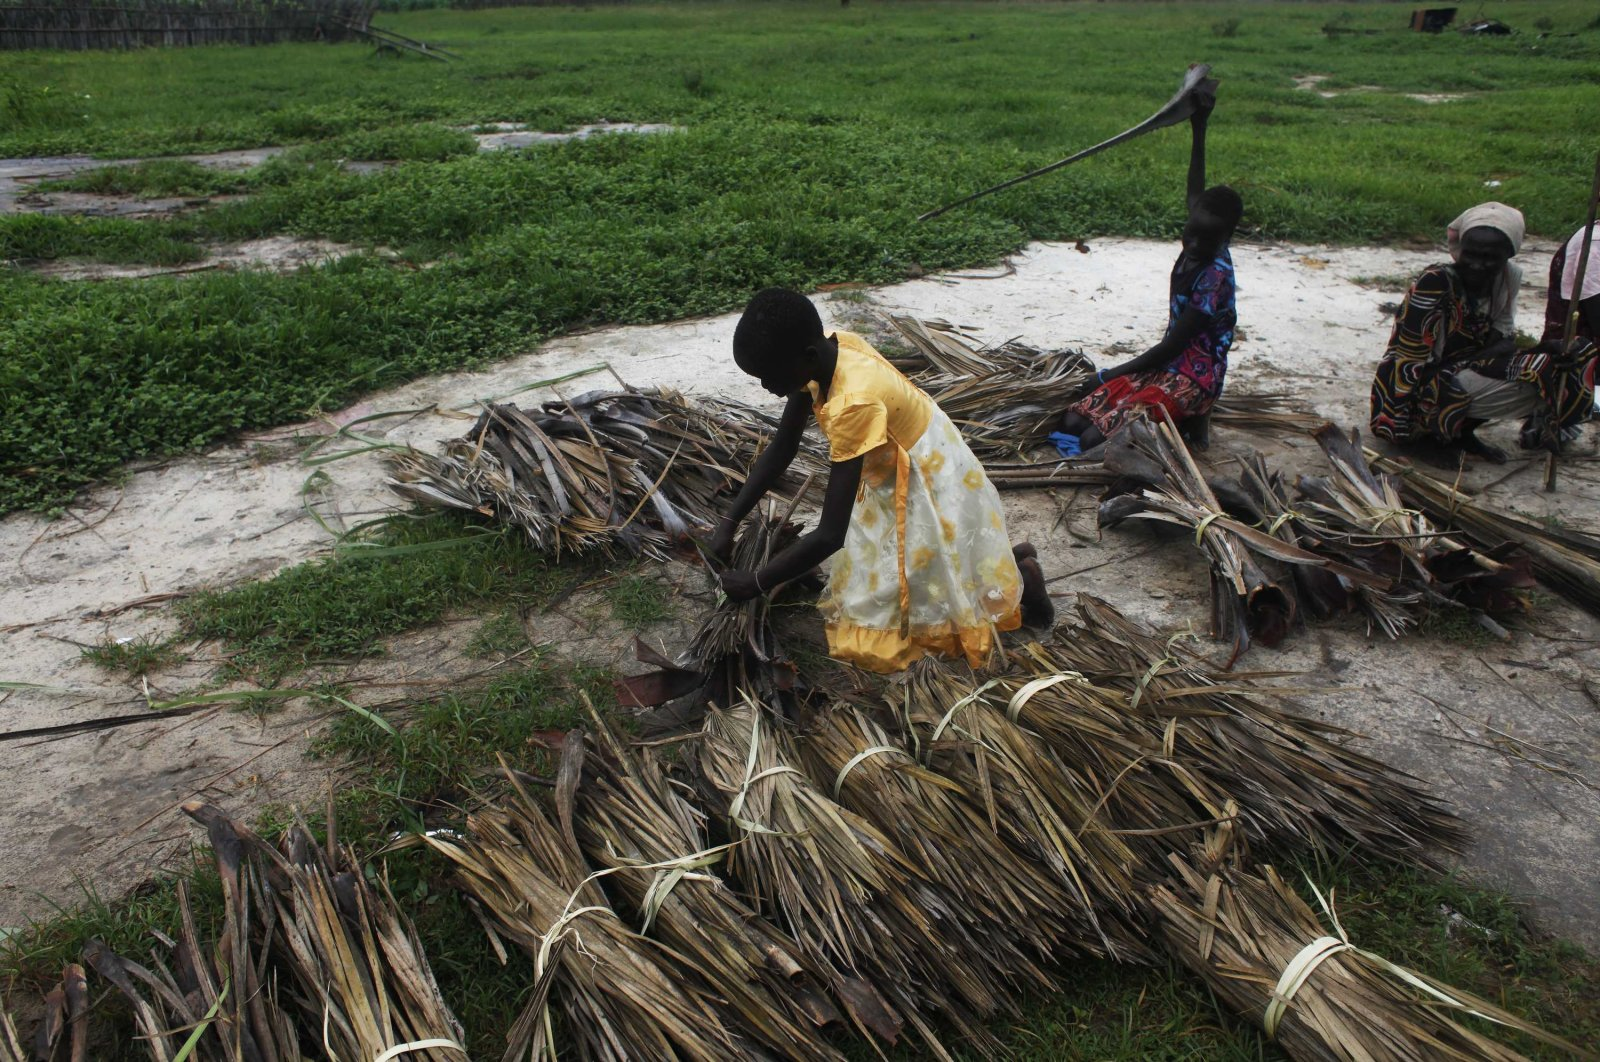 This July 17, 2014 file photo, shows girls tying dried grasses into bundles to be sold in Leer, Unity State, South Sudan. (Reuters Photo)